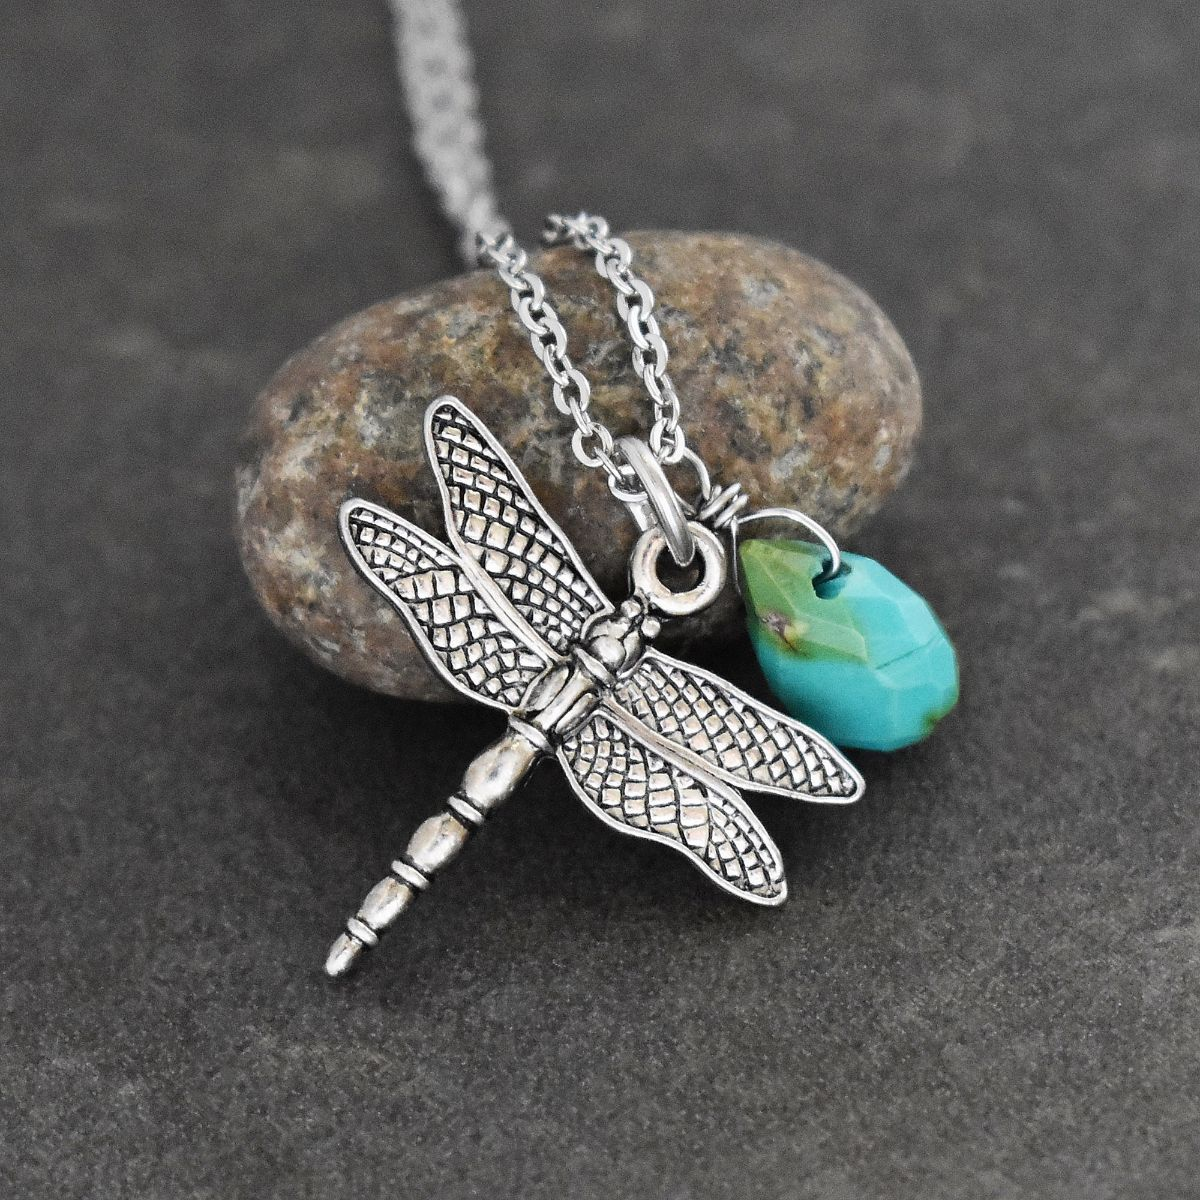 Dragonfly & Turquoise Drop Necklace